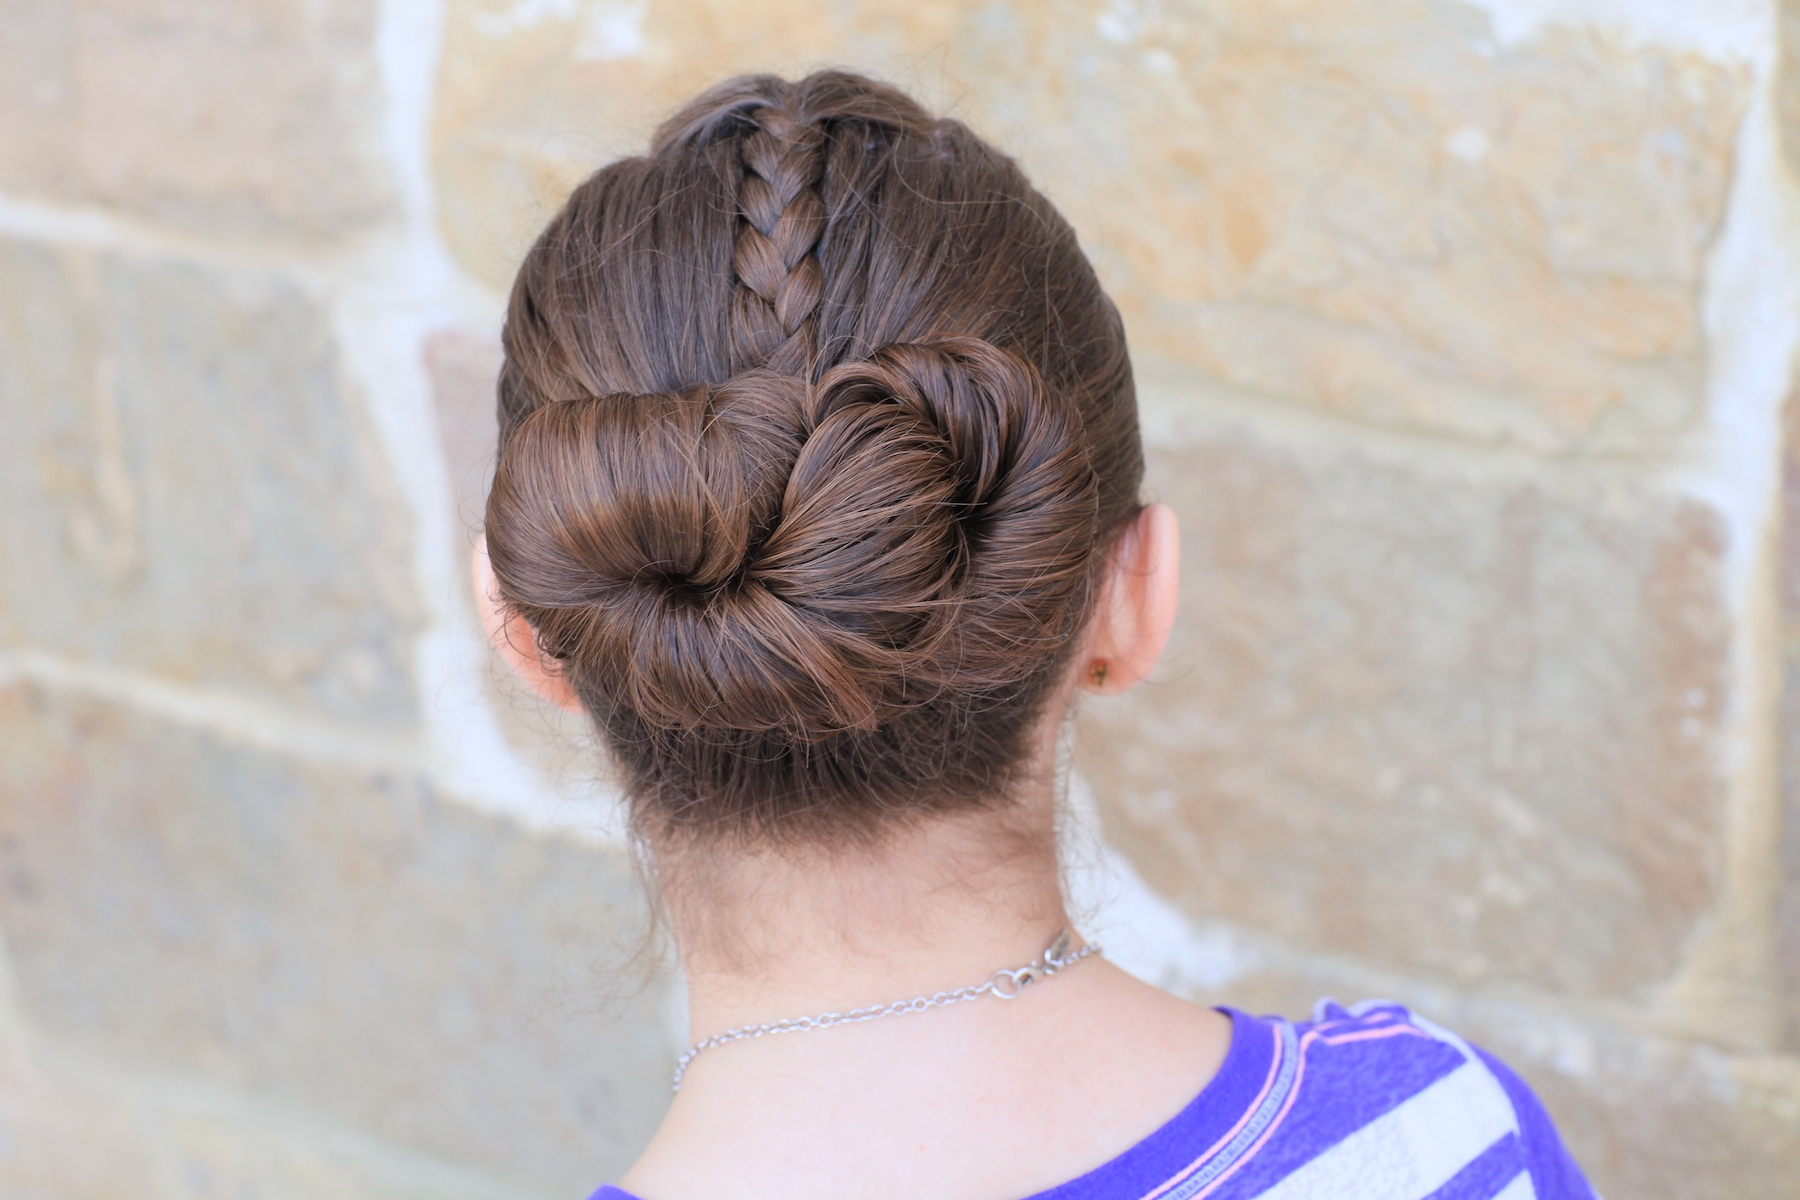 How To Create An Infinity Bun Updo Hairstyles Cute Girls Hairstyles